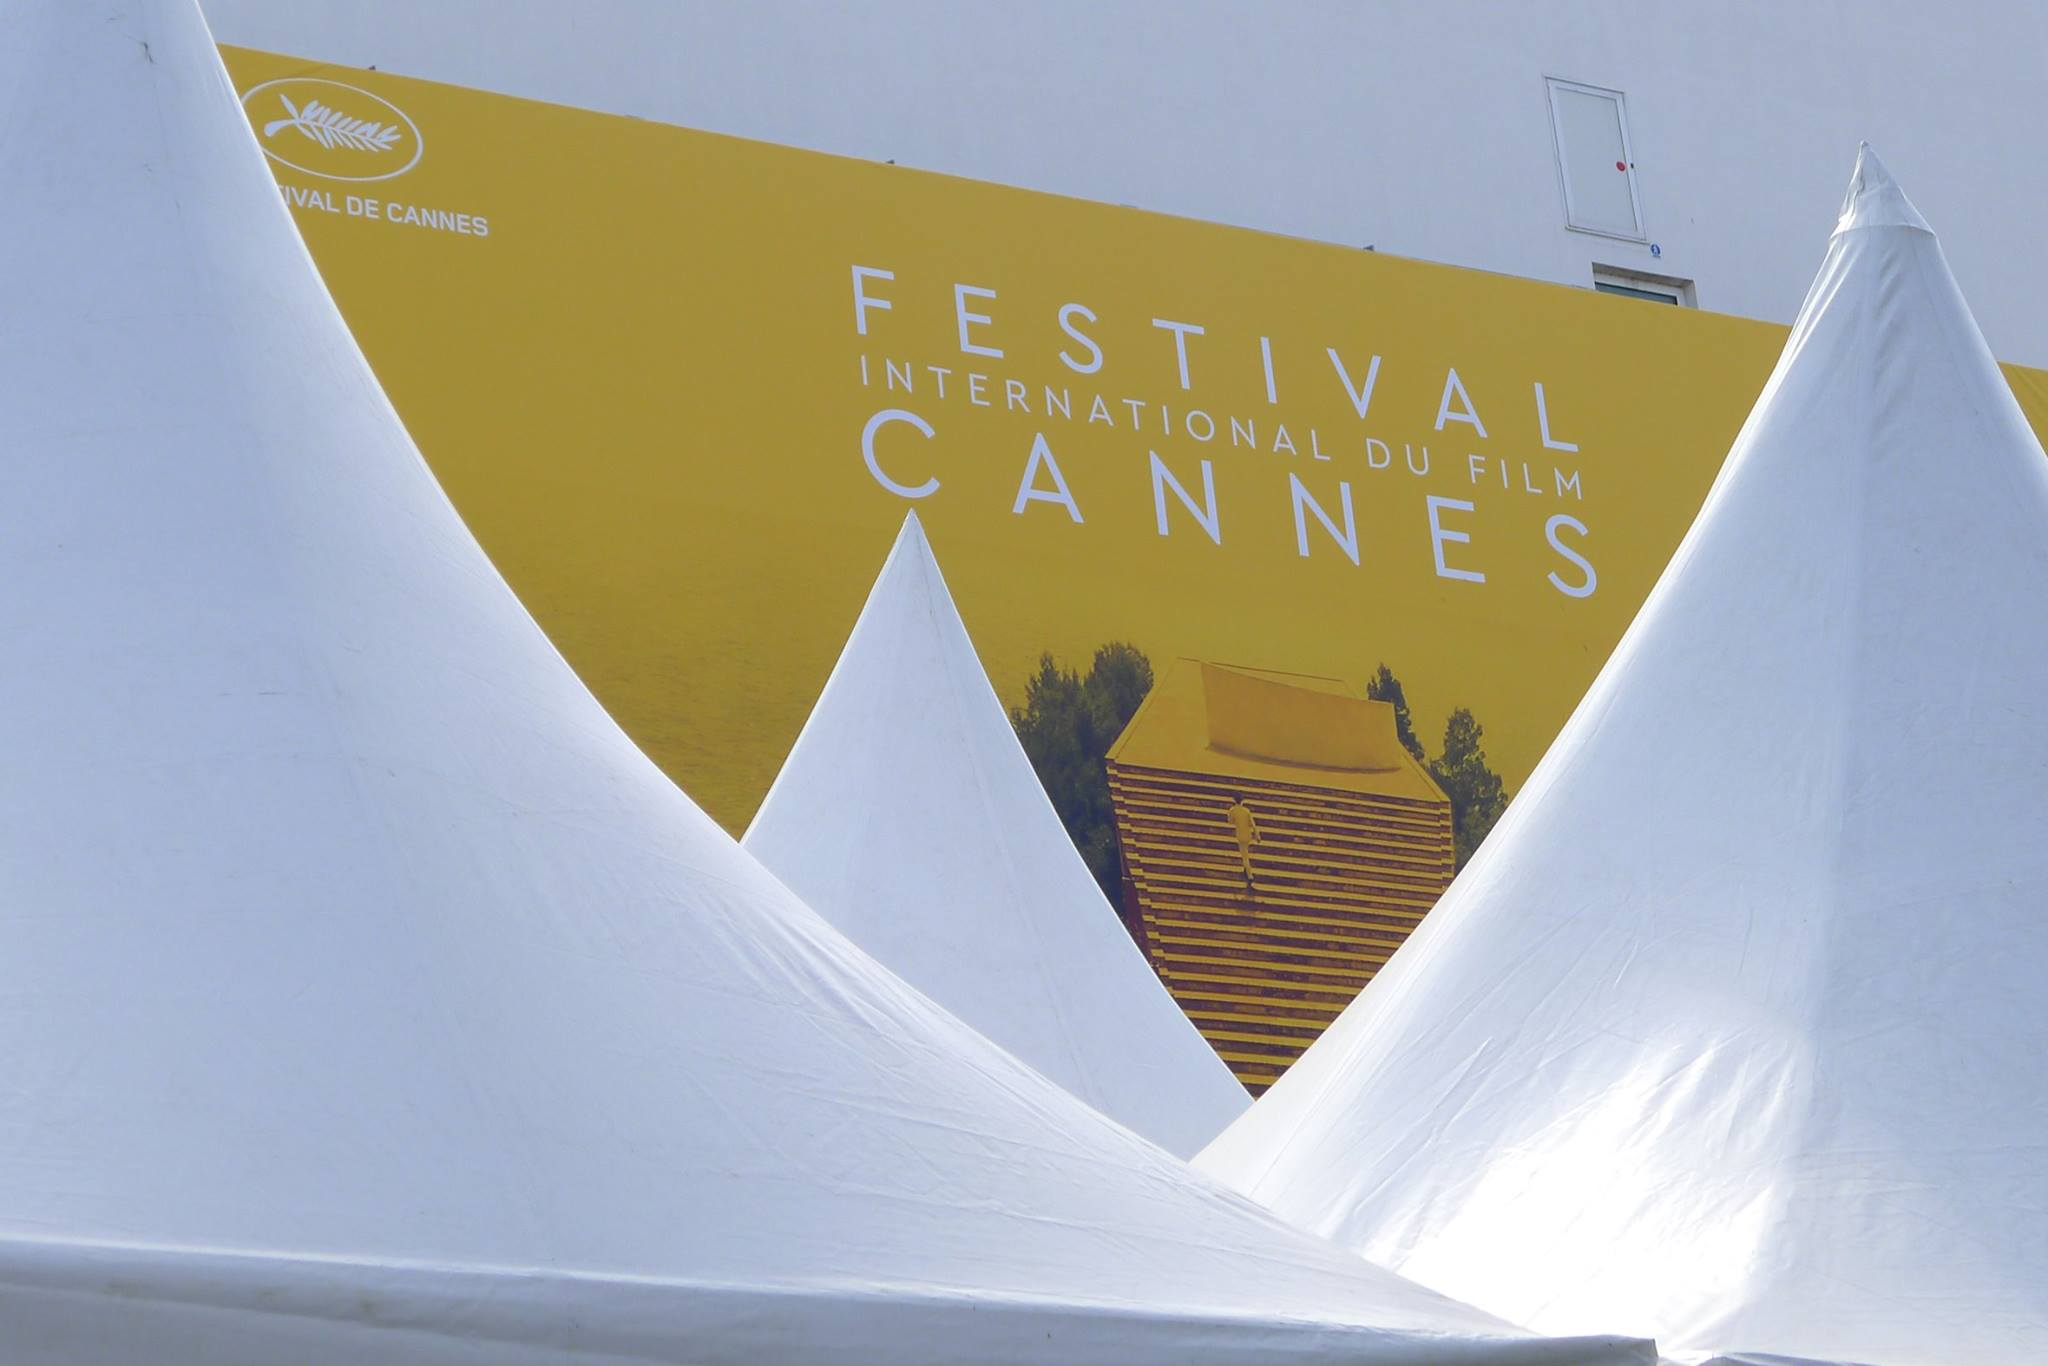 Internationales Festival in Cannes